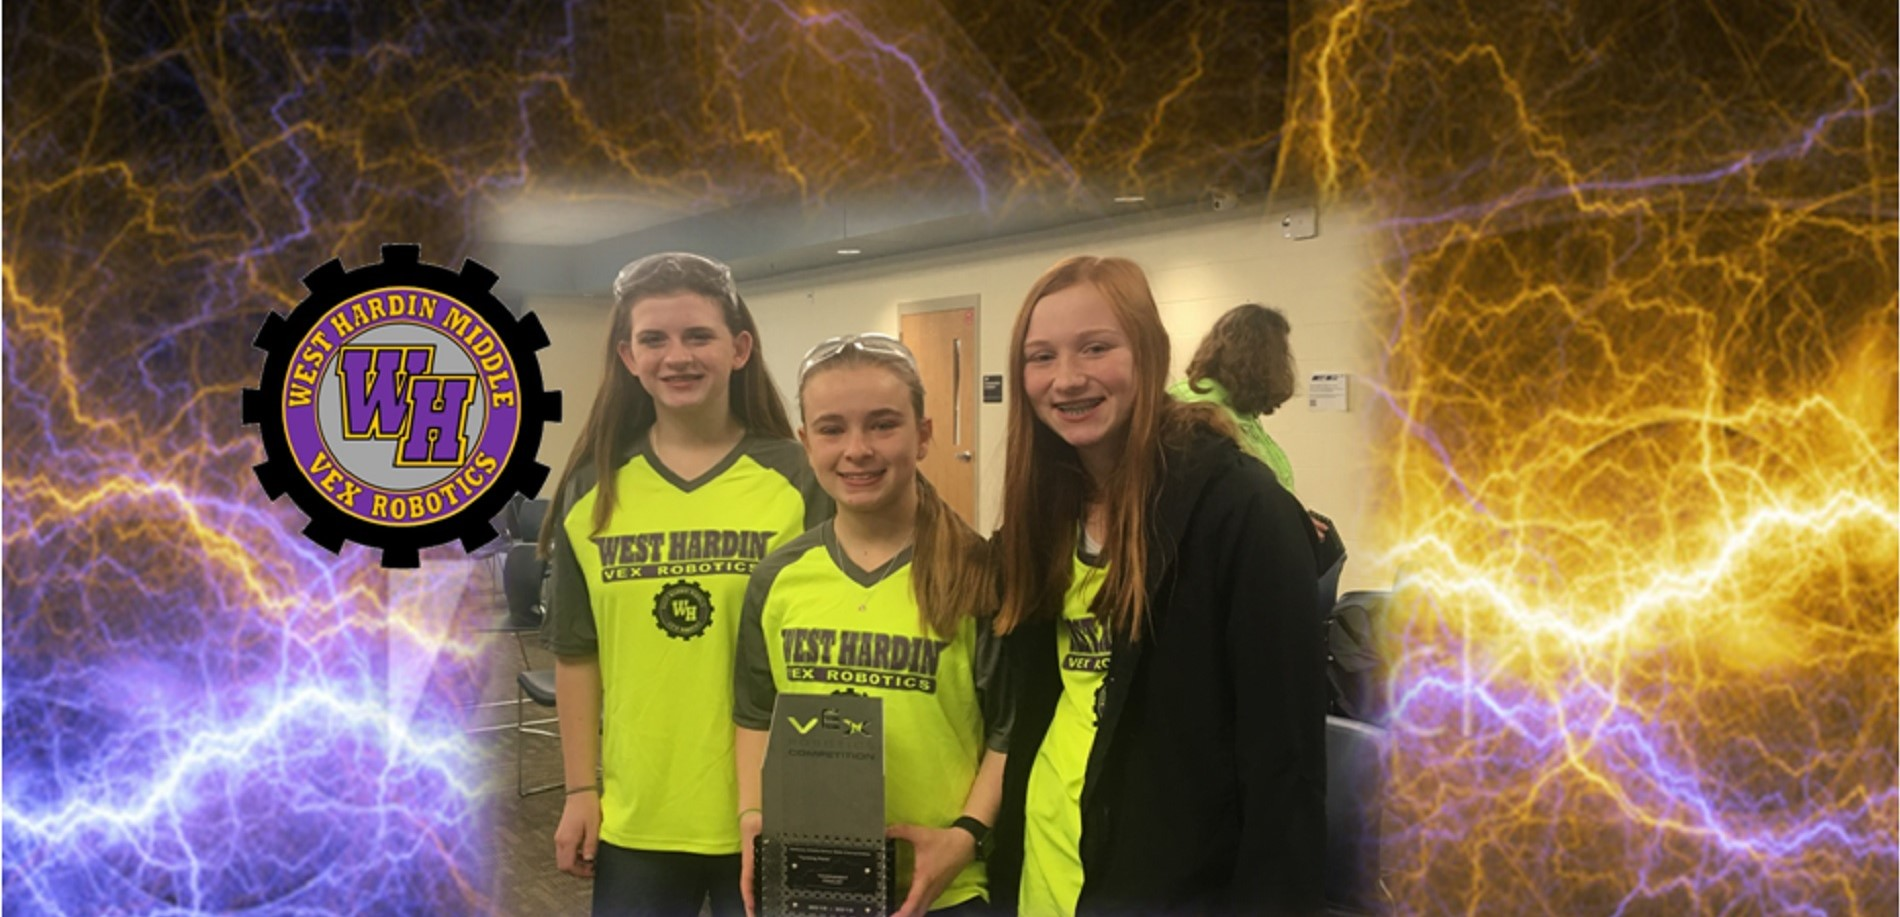 Team 4431A (L-R: Megan Puckett, Briley Robbins & Gracie Tilley) Earn Runner-Up Honors at the 2019 KY Middle School VEX Robotics State Championship!